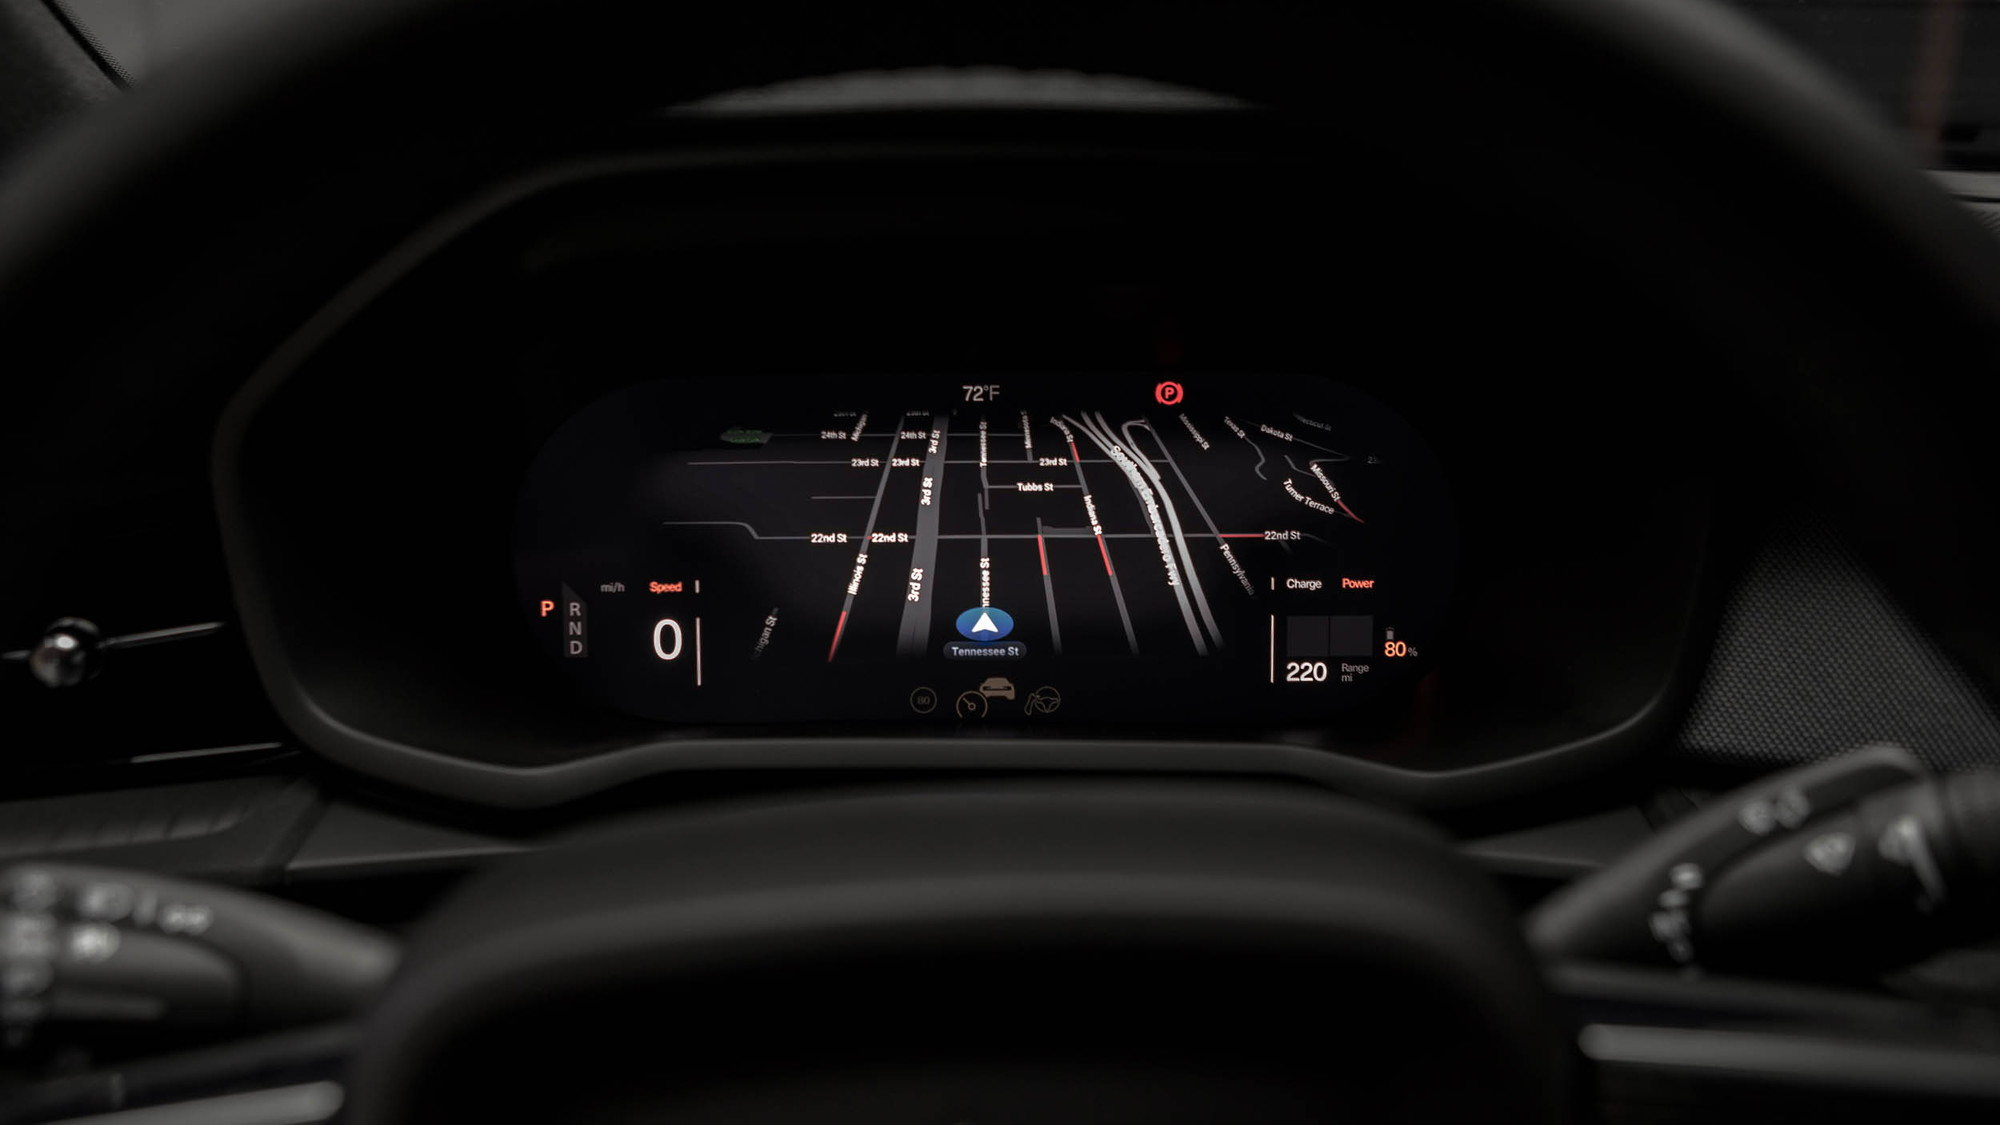 Google's Android-based infotainment in the Polestar 2